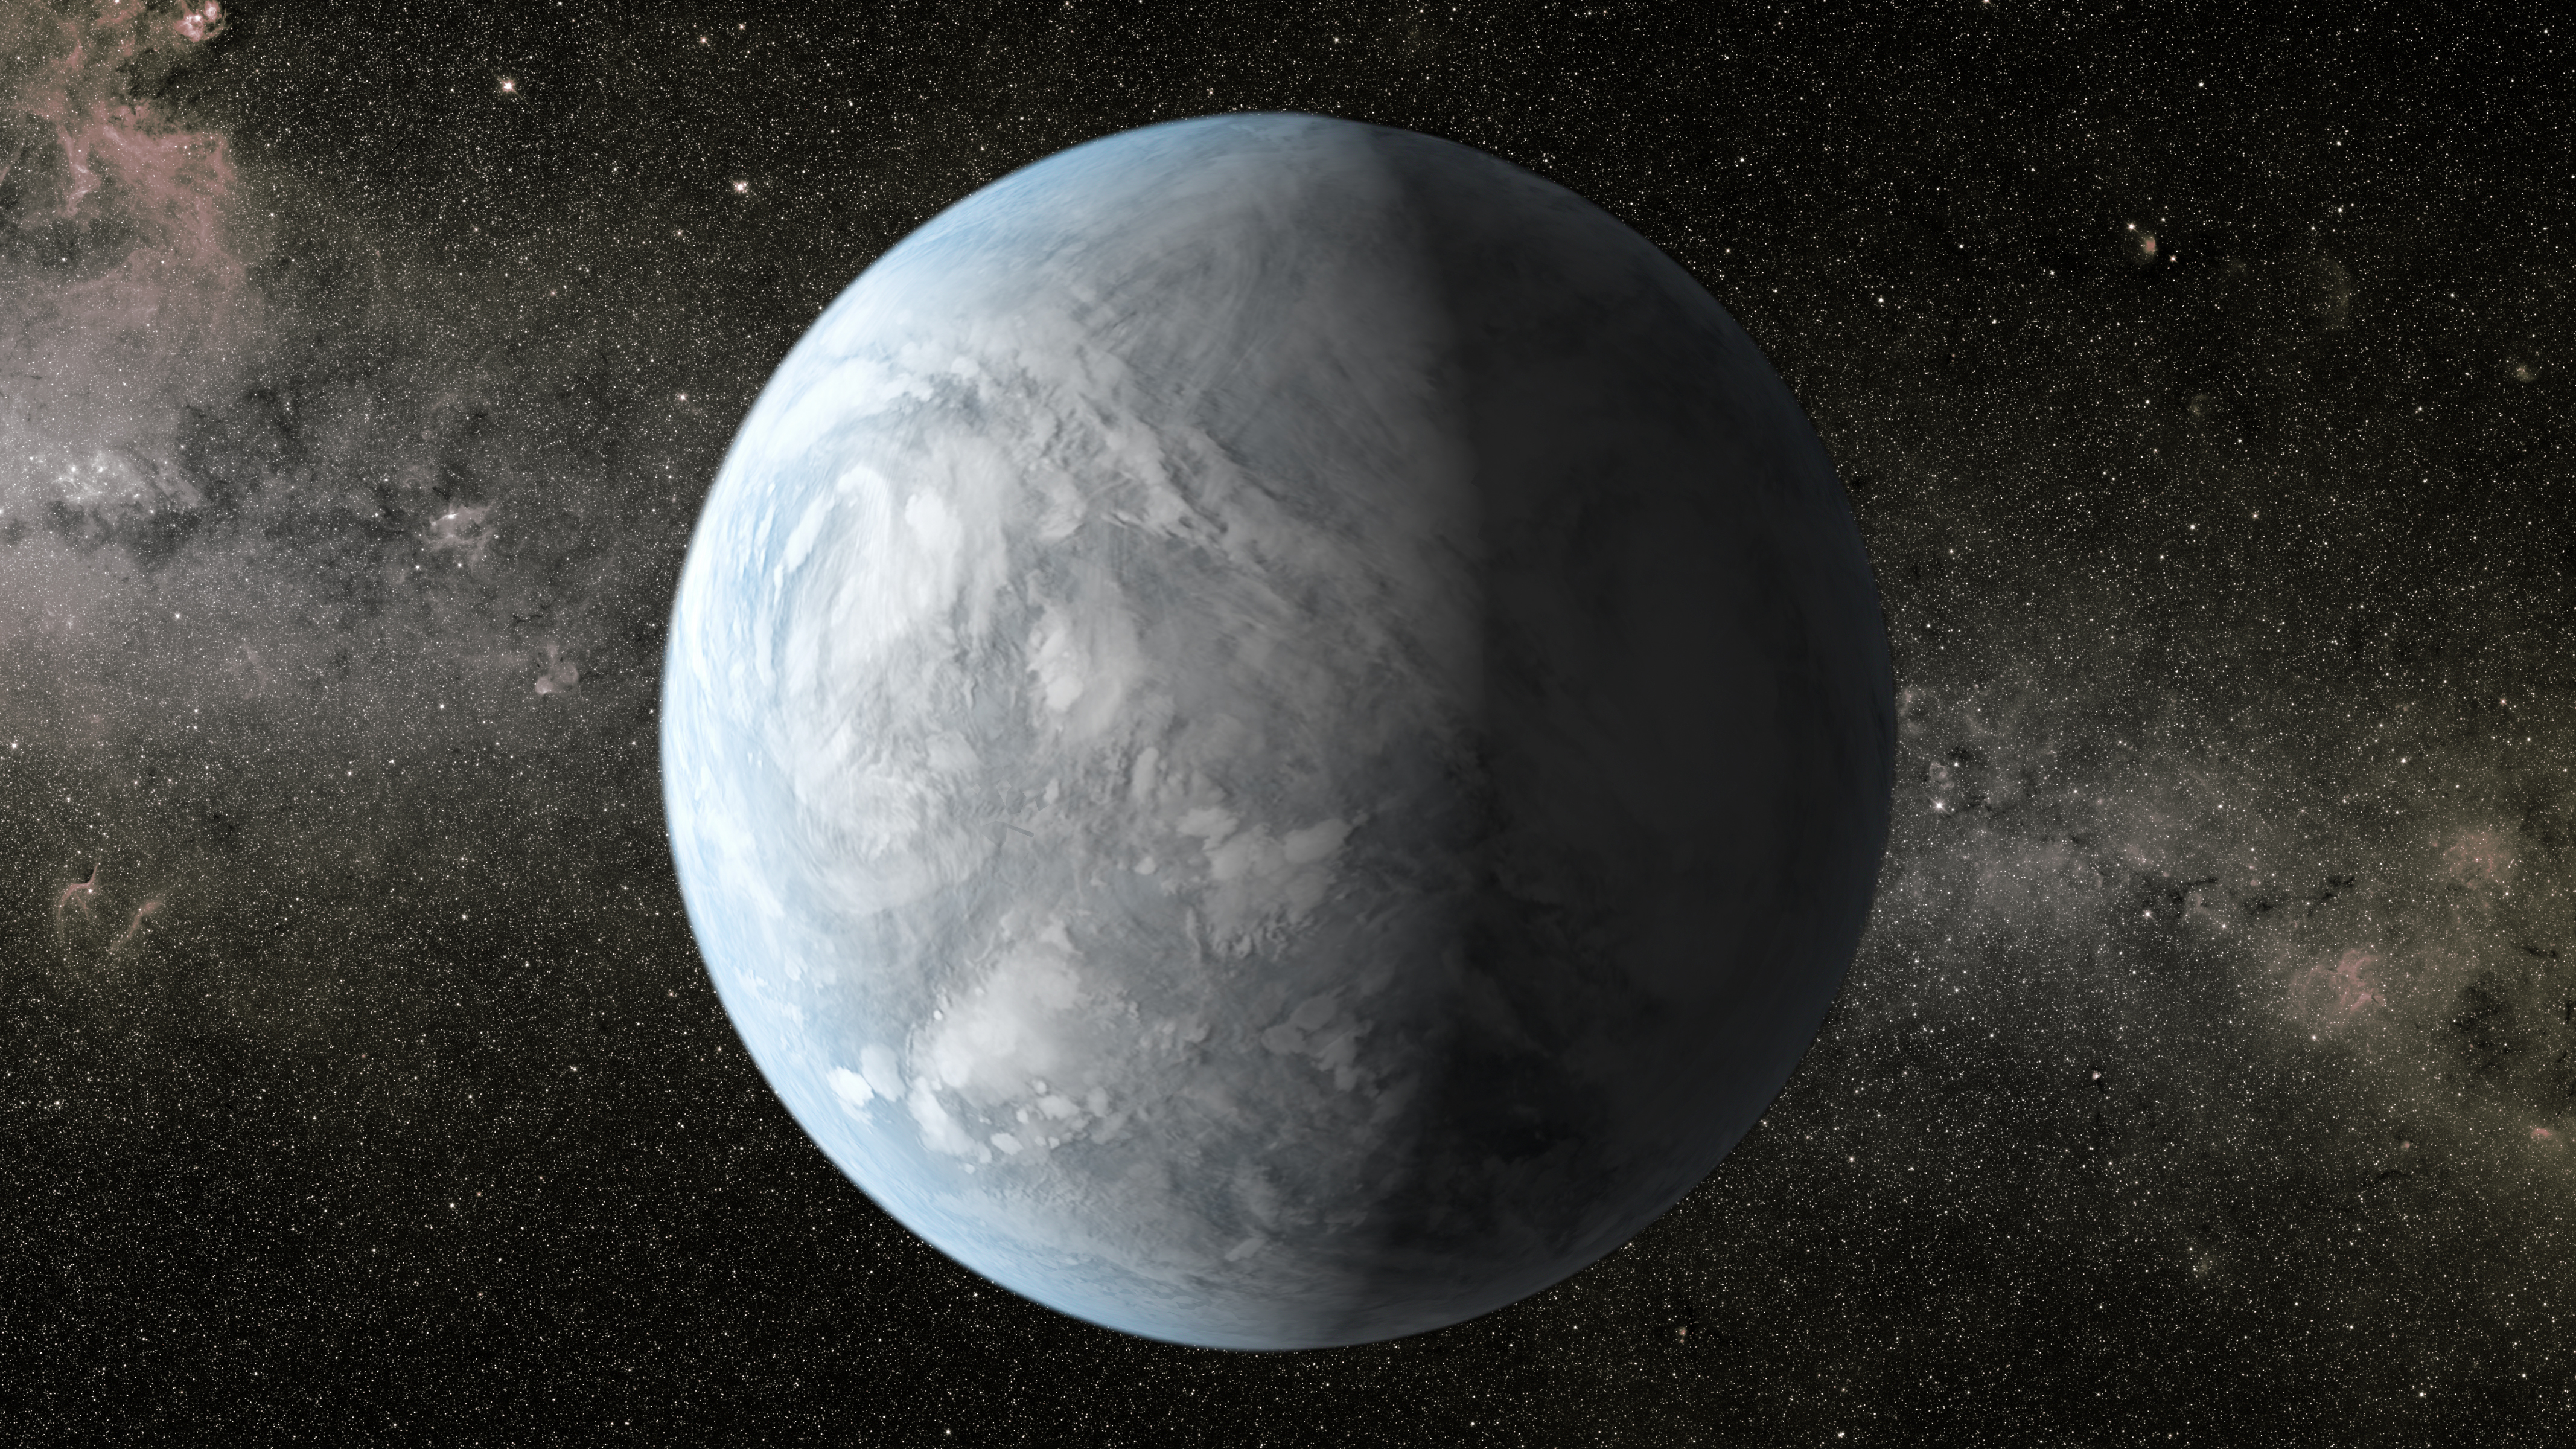 Four of the most fascinating exoplanets